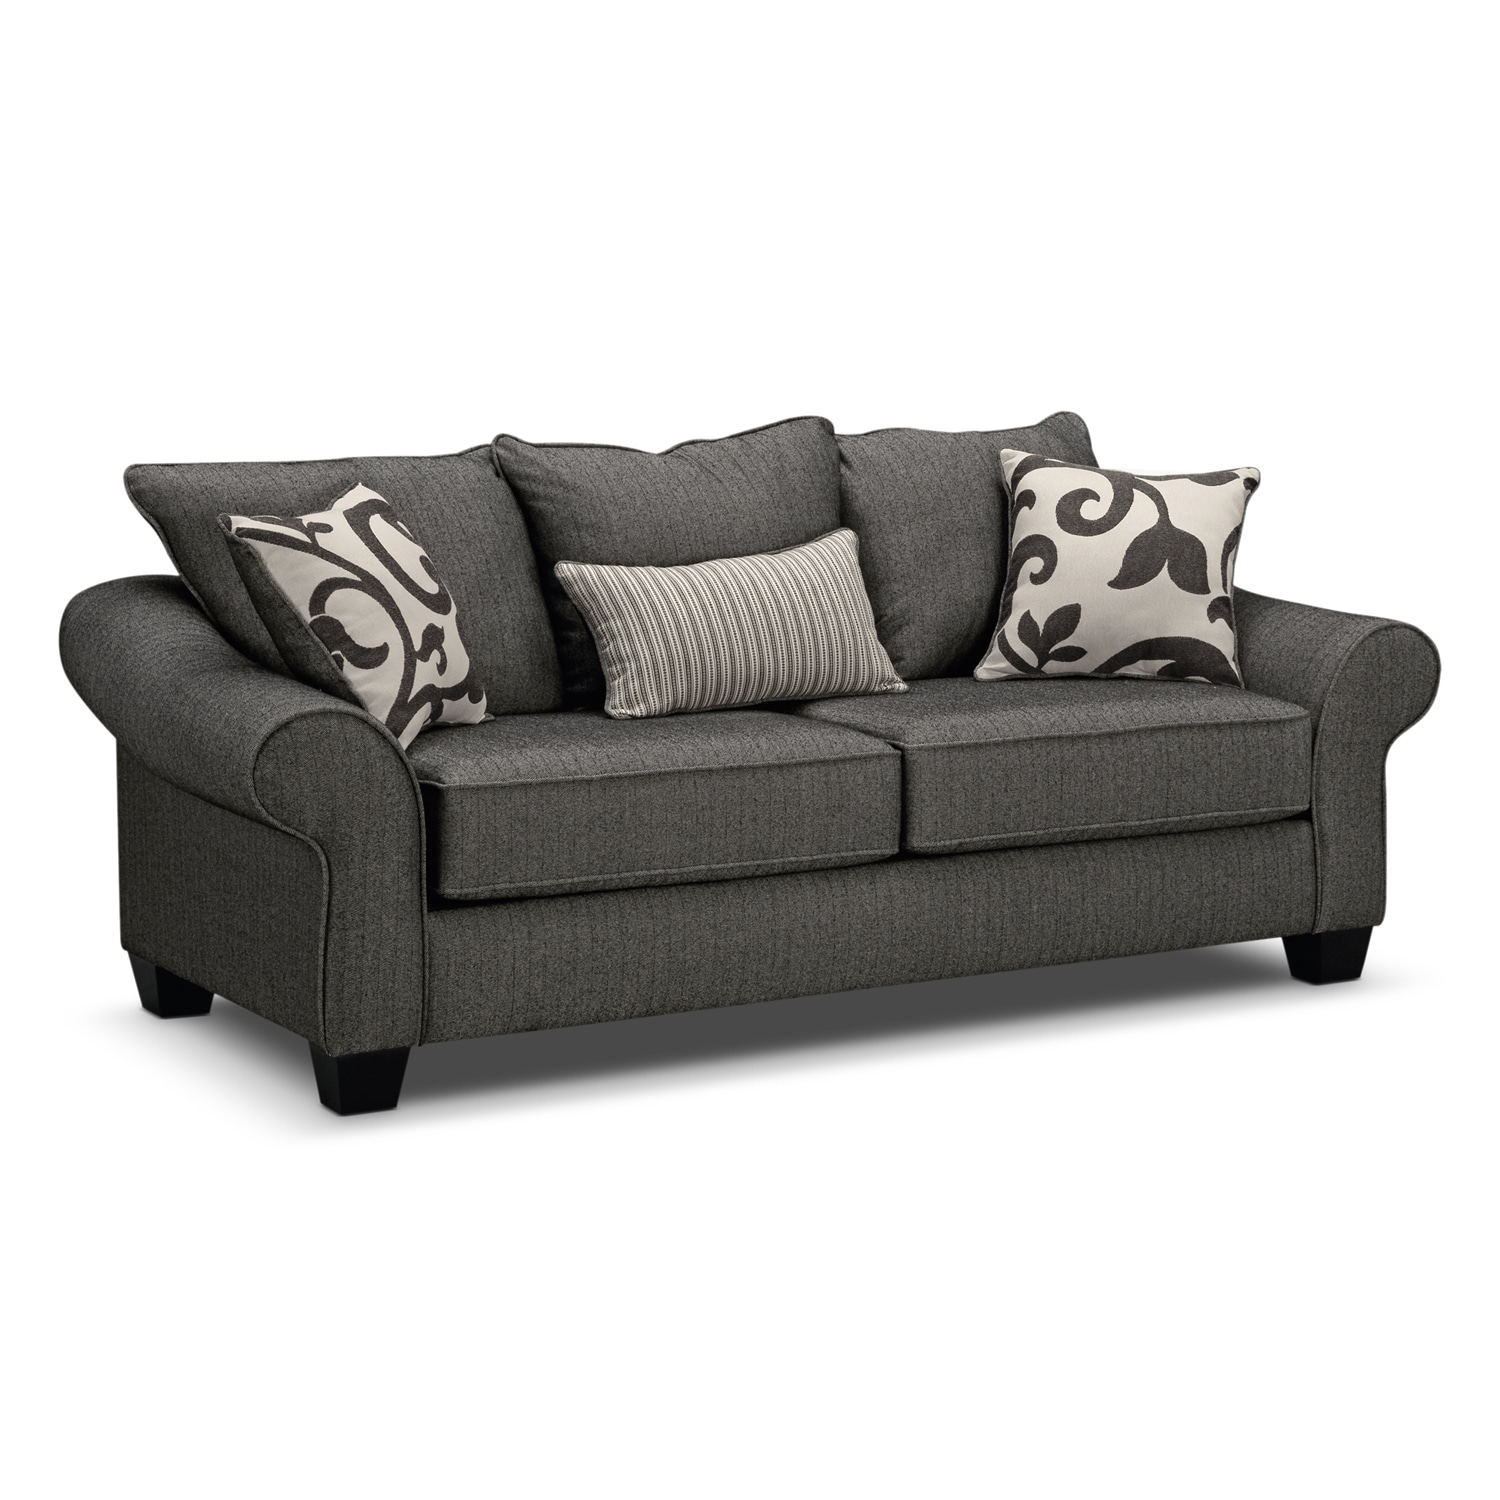 Living Room Furniture - Colette Full Innerspring Sleeper Sofa - Gray